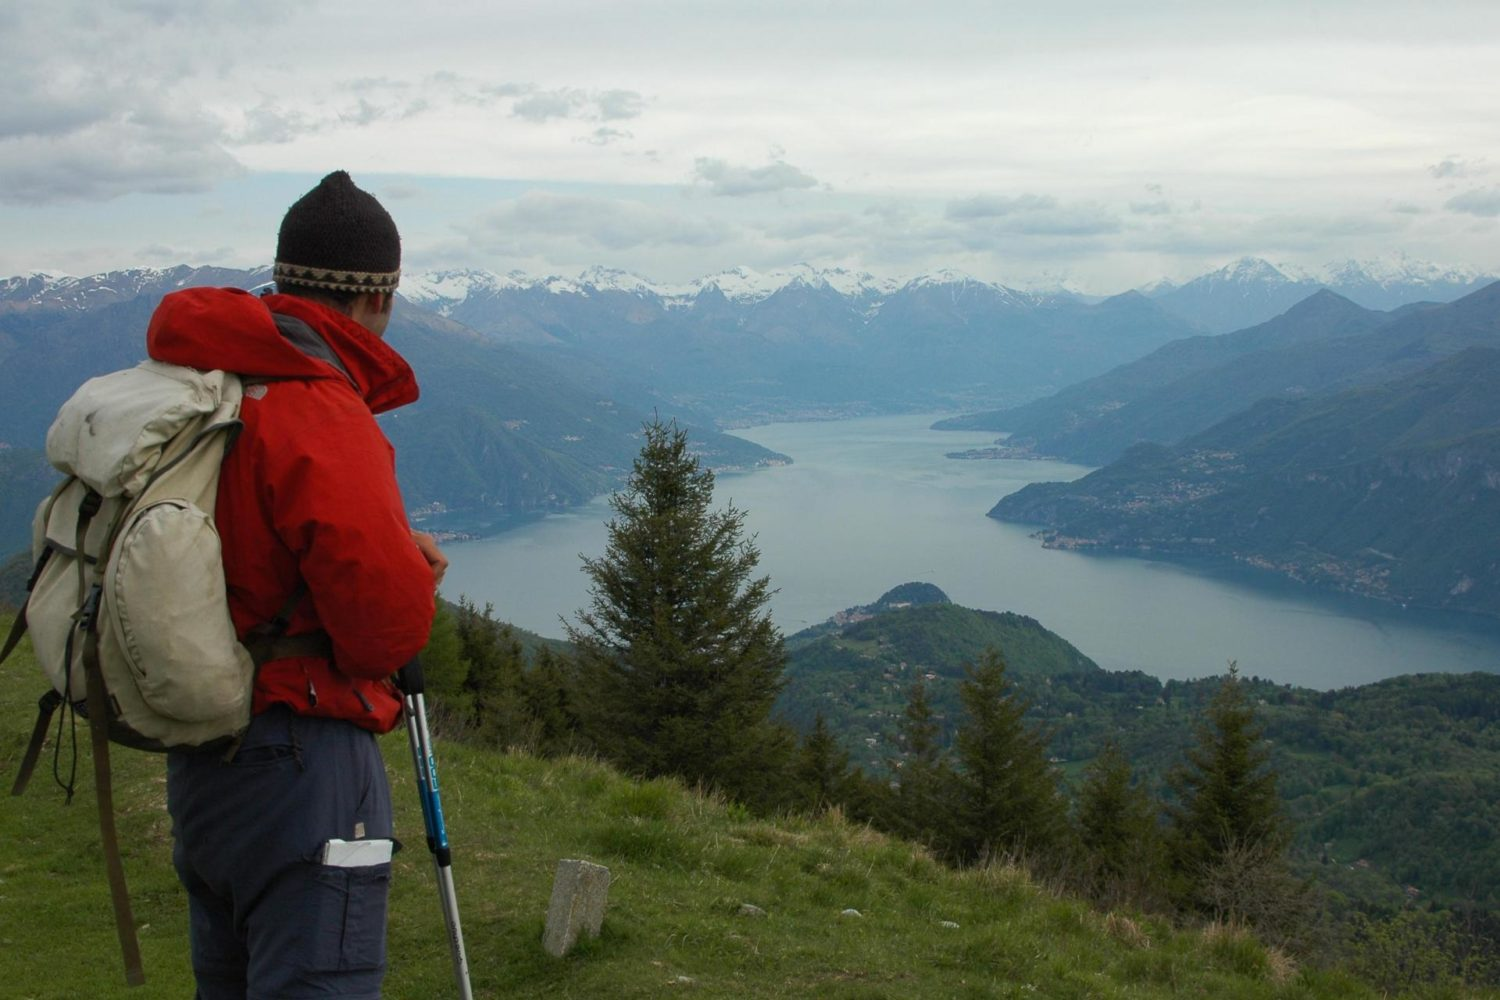 Italy Lake Como self guided hiking tour with Pure Adventures